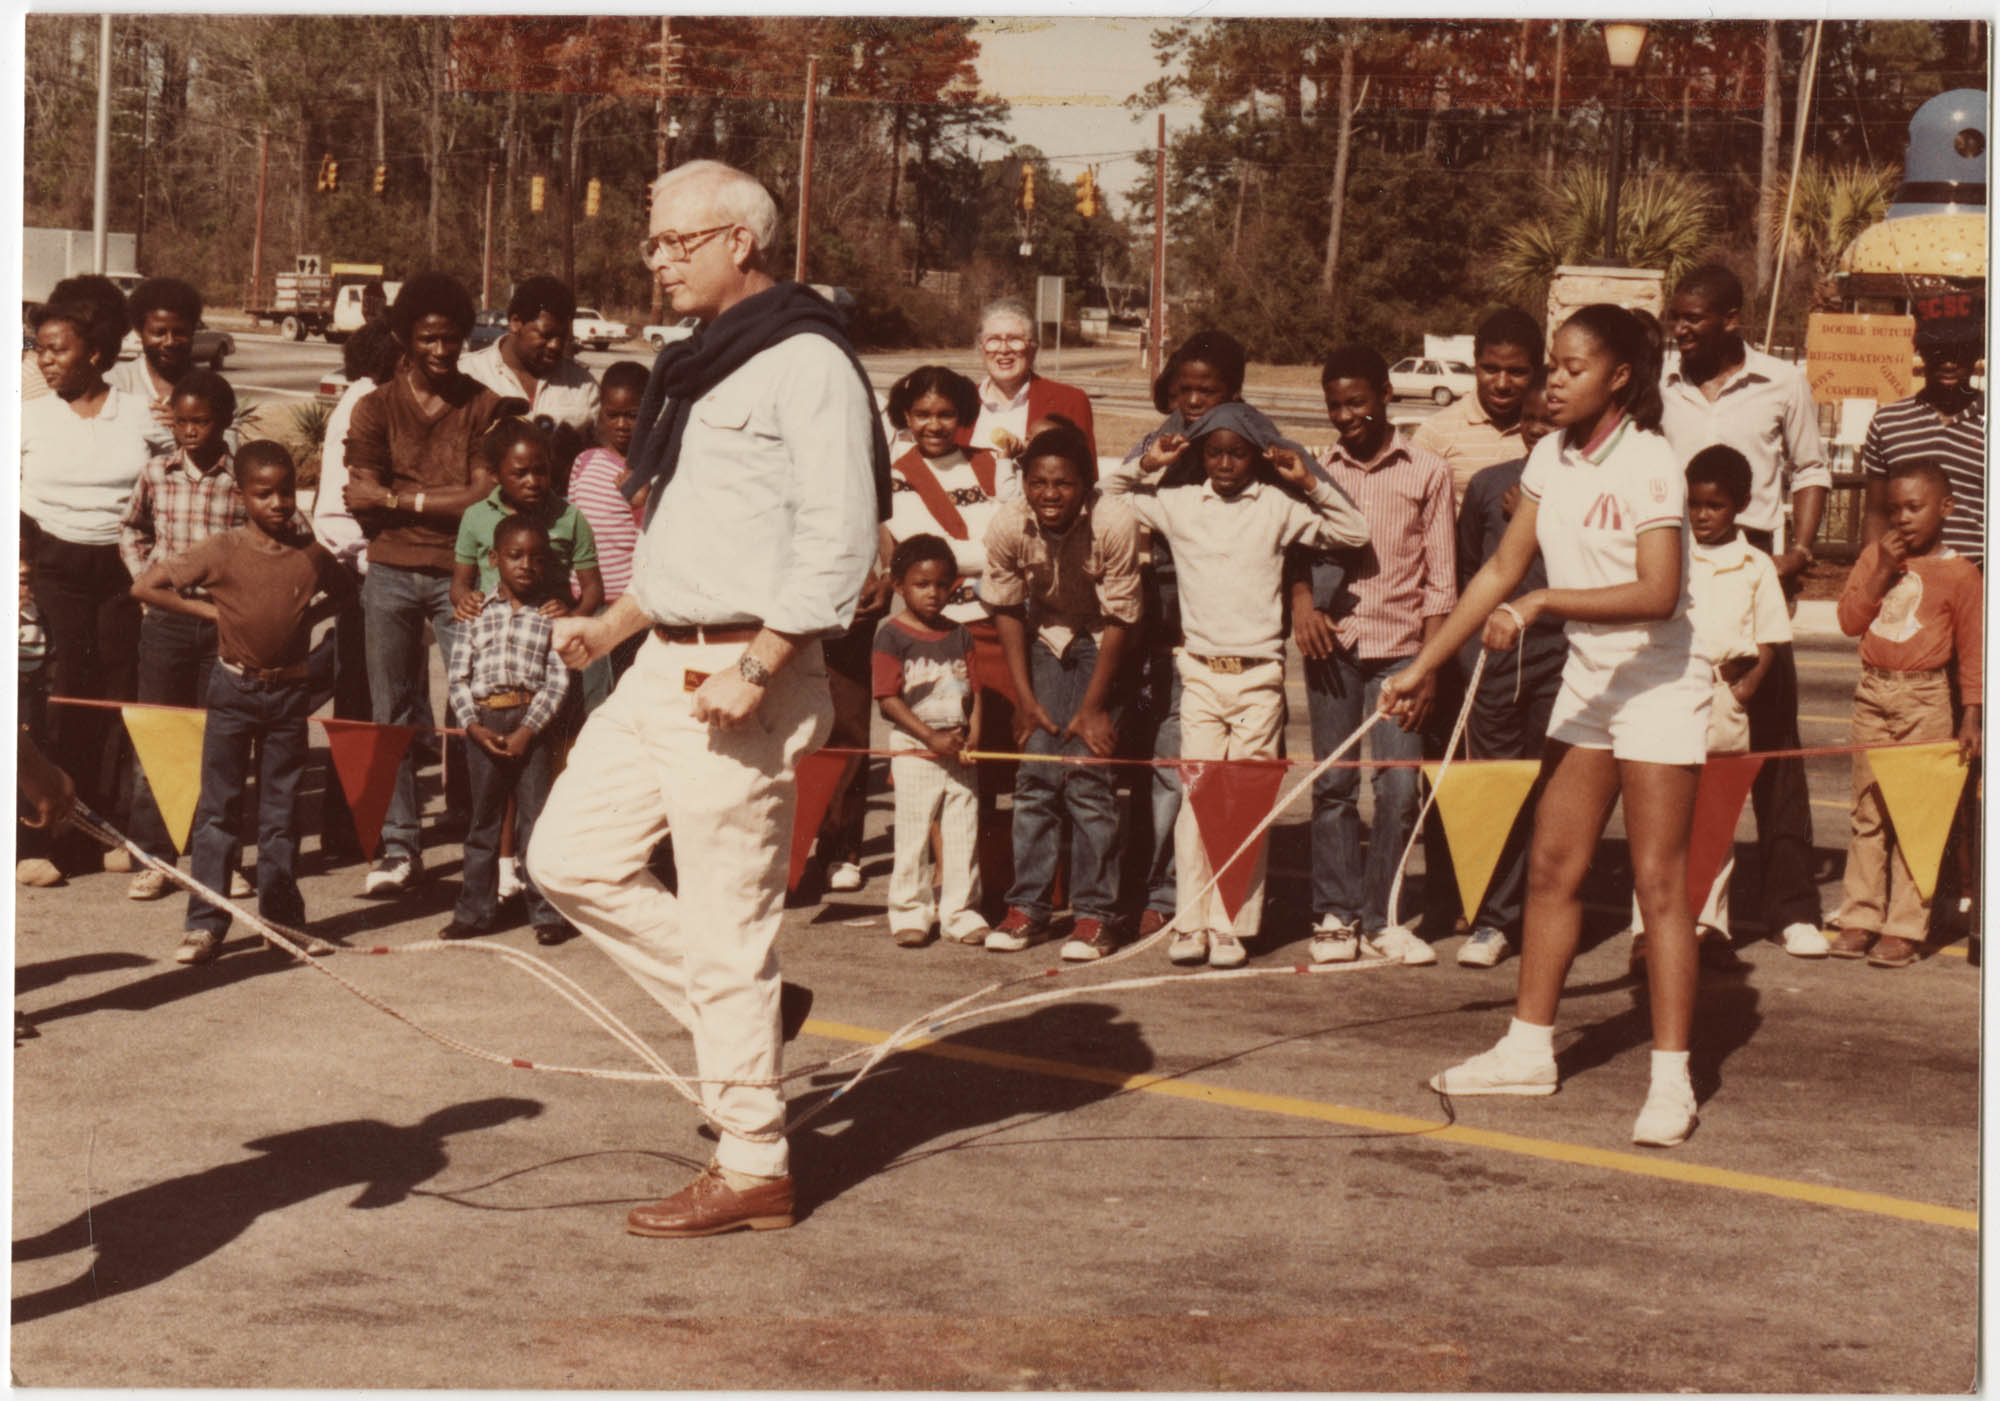 Photograph of People Jumping Rope